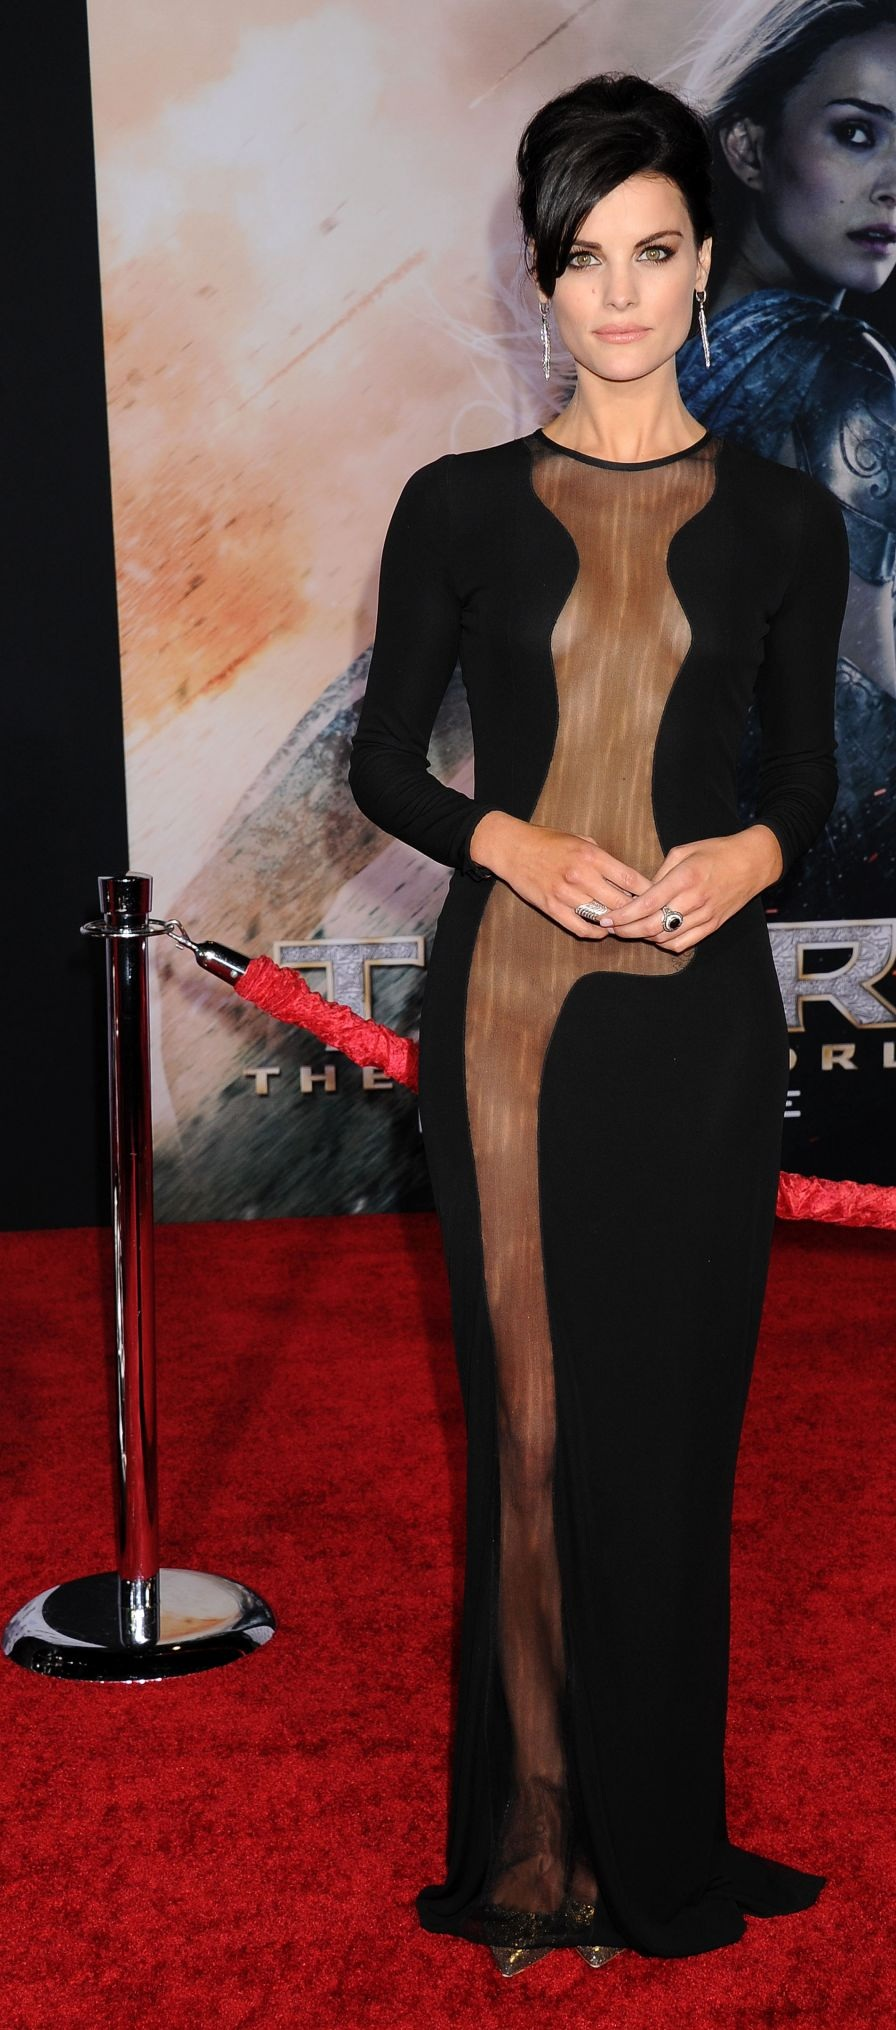 jaimie-alexander-at-thor-the-dark-world-premiere-in-hollywood_11.jpg - 348.97 KB